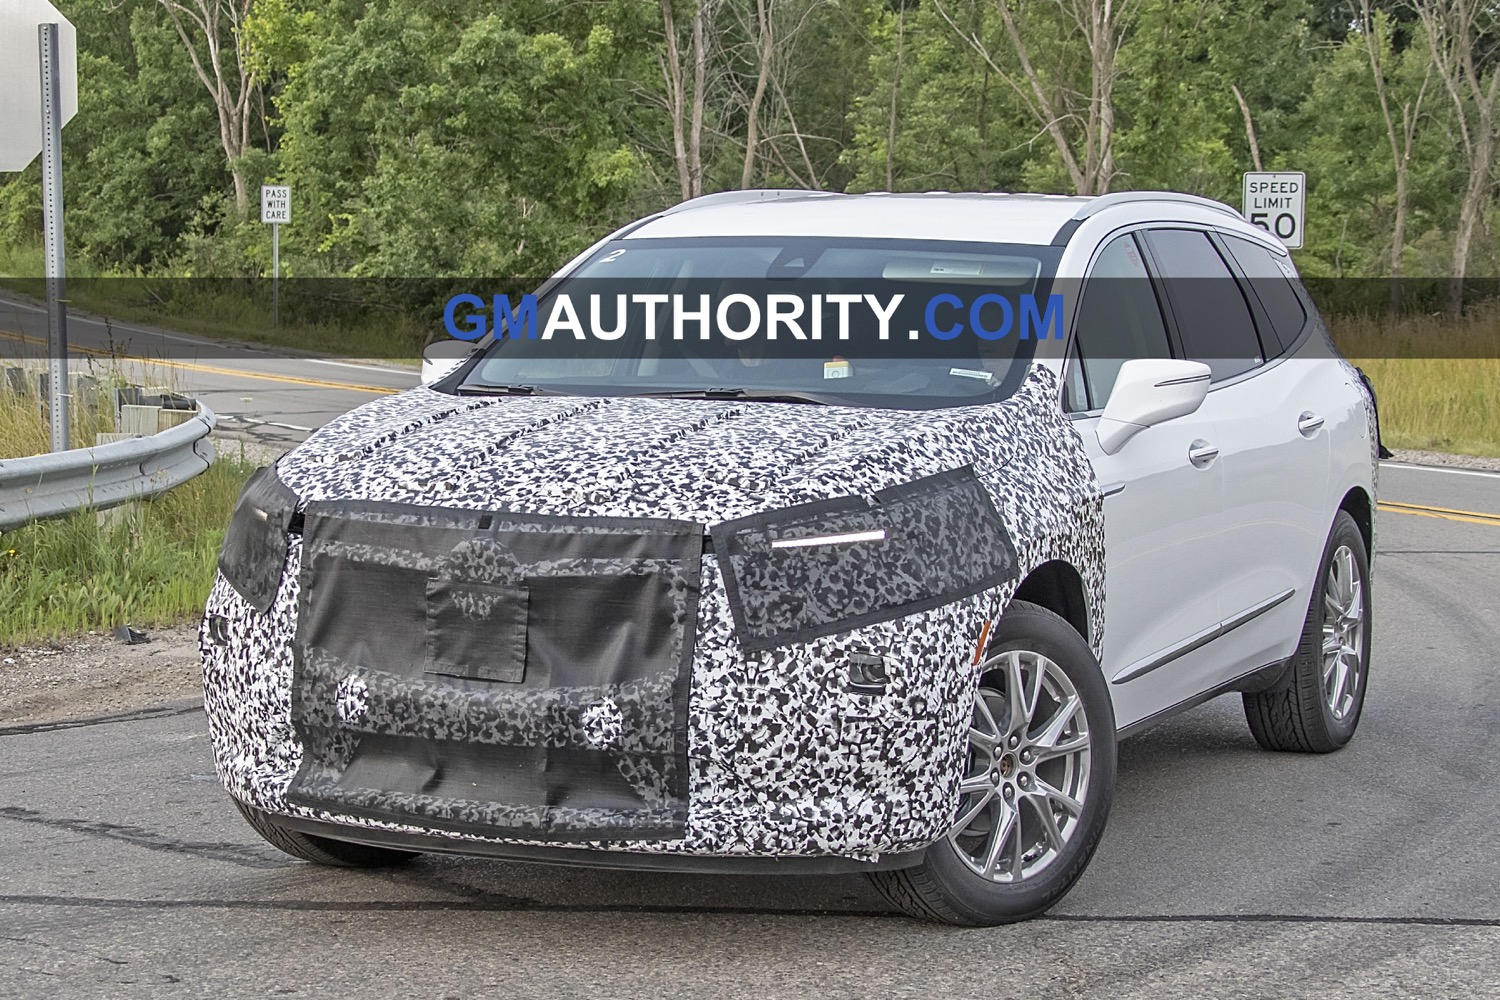 Buick Enclave Refresh Spied Testing For The First Time | Gm New 2022 Buick Enclave Pictures, Packages, Reliability